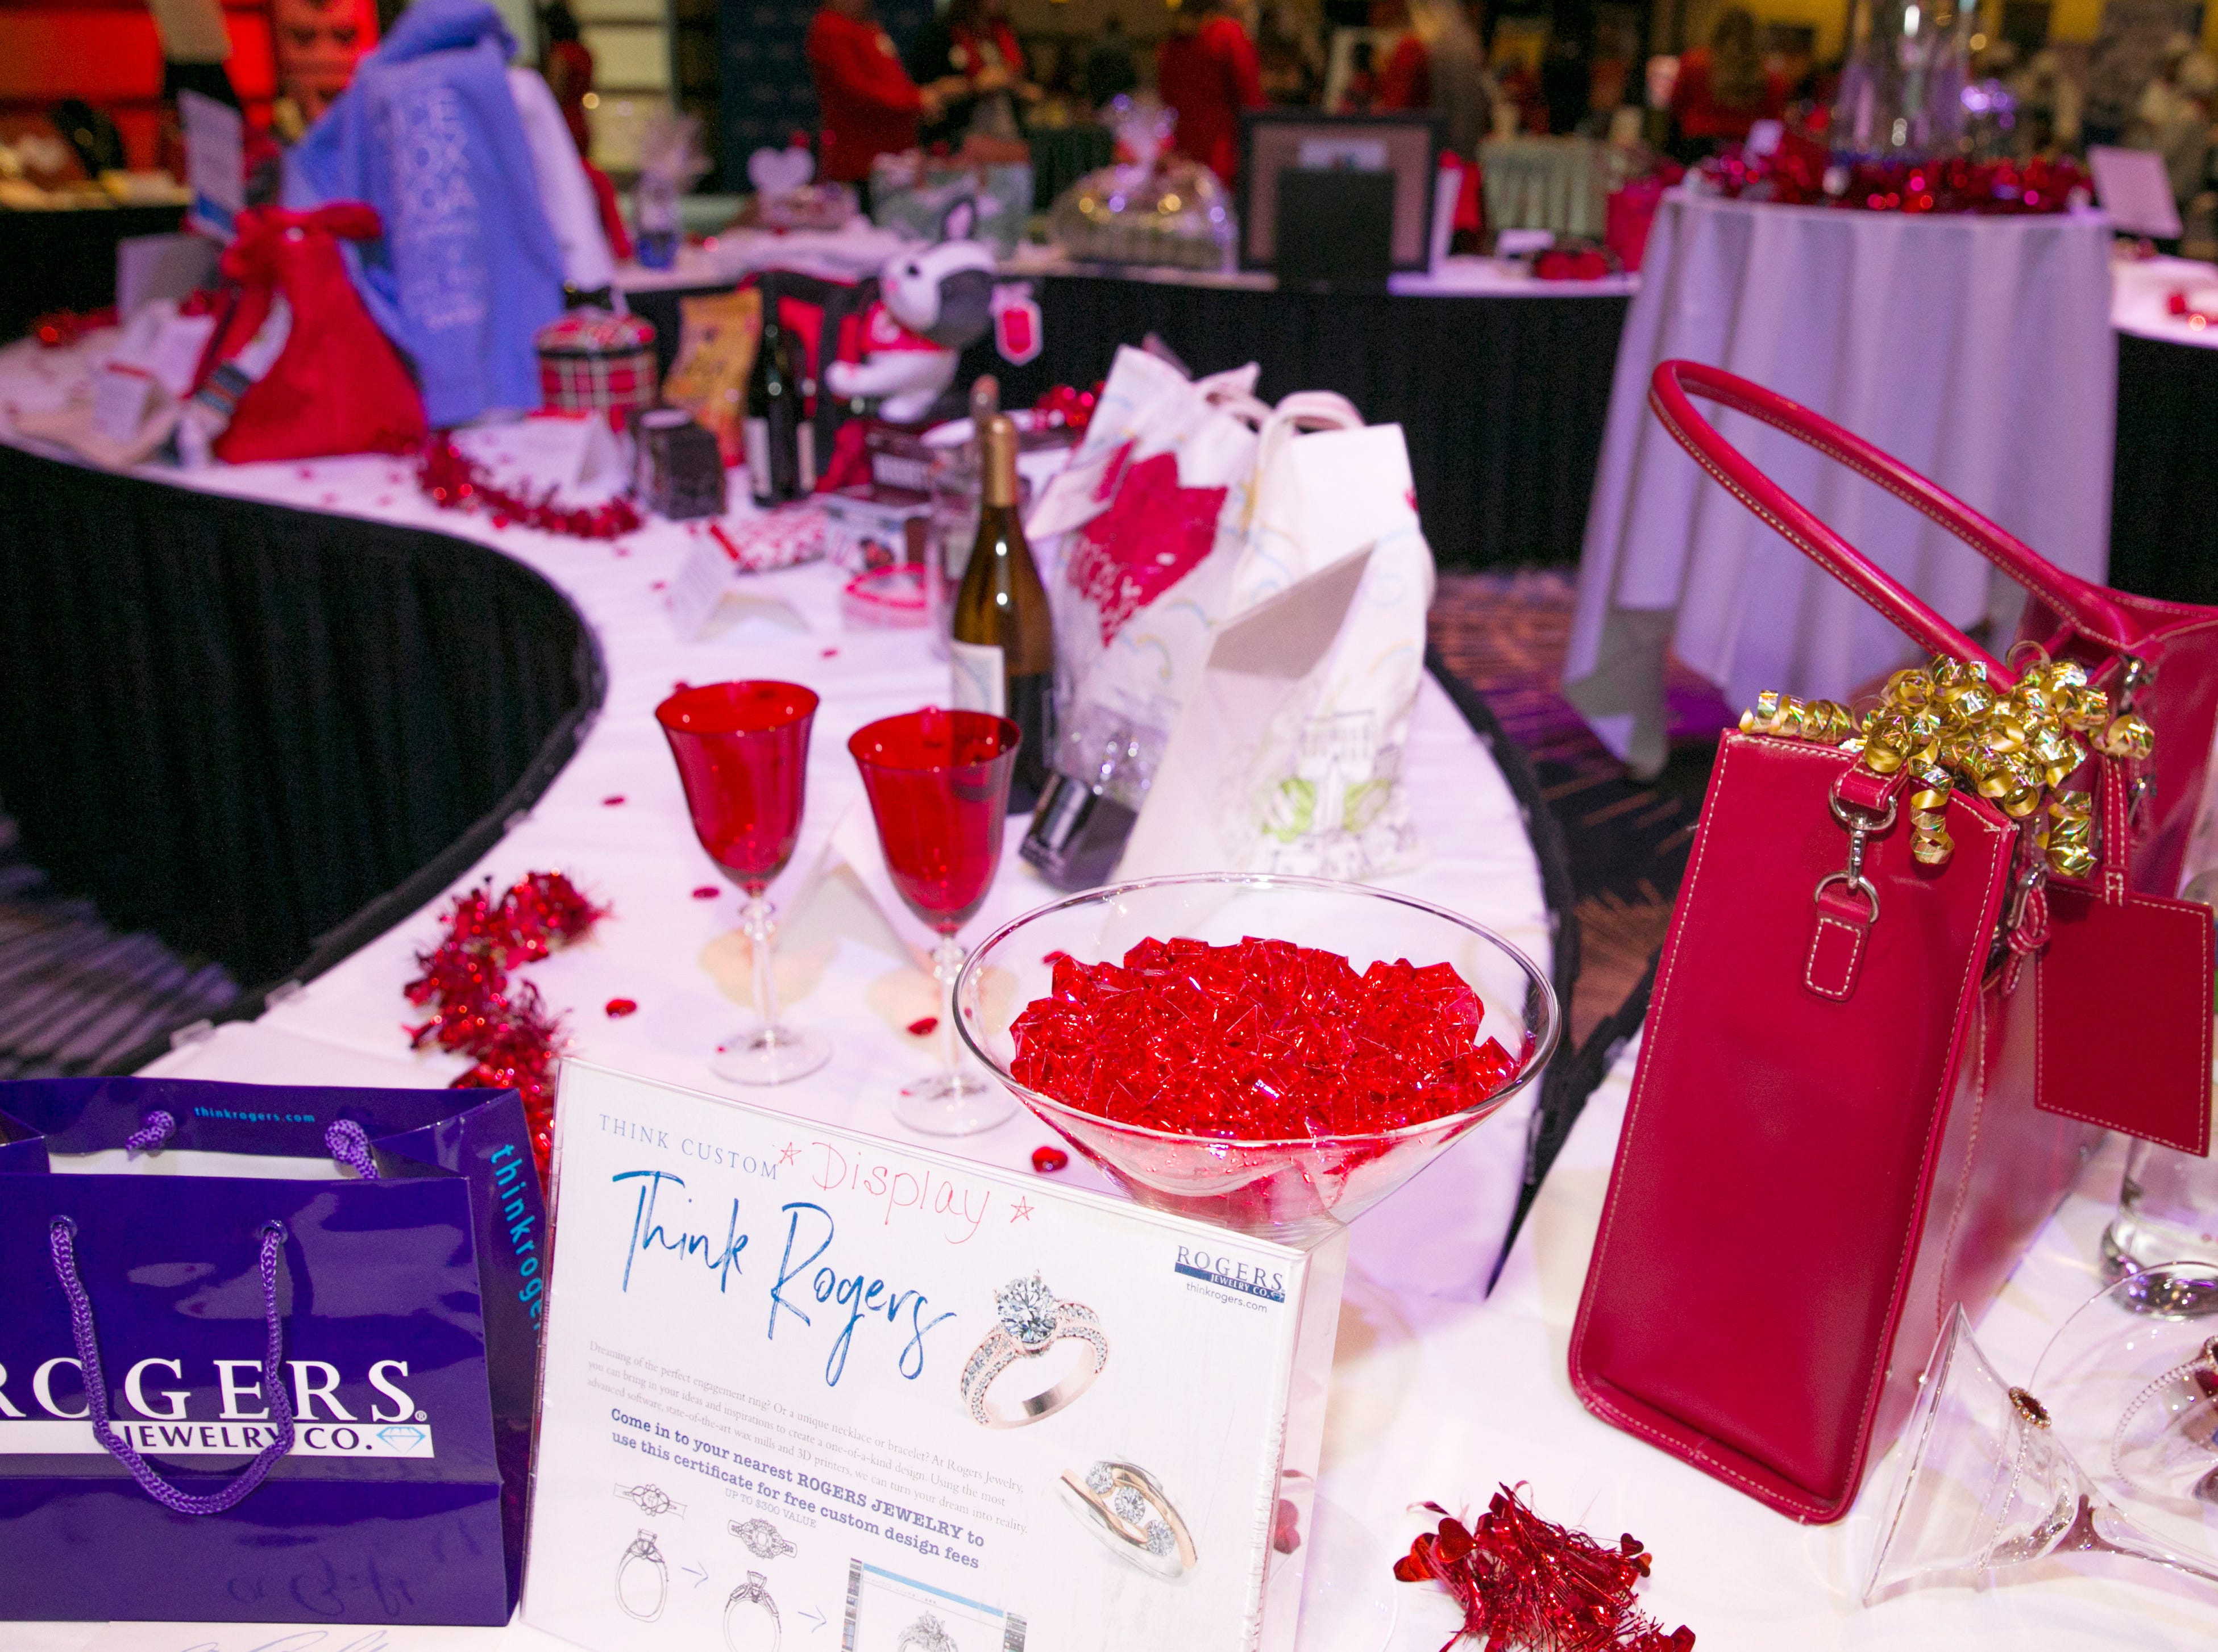 A photograph taken during the 15th Annual Go Red for Women Luncheon on Friday, March 1, 2019 held at the downtown Reno Ballroom.